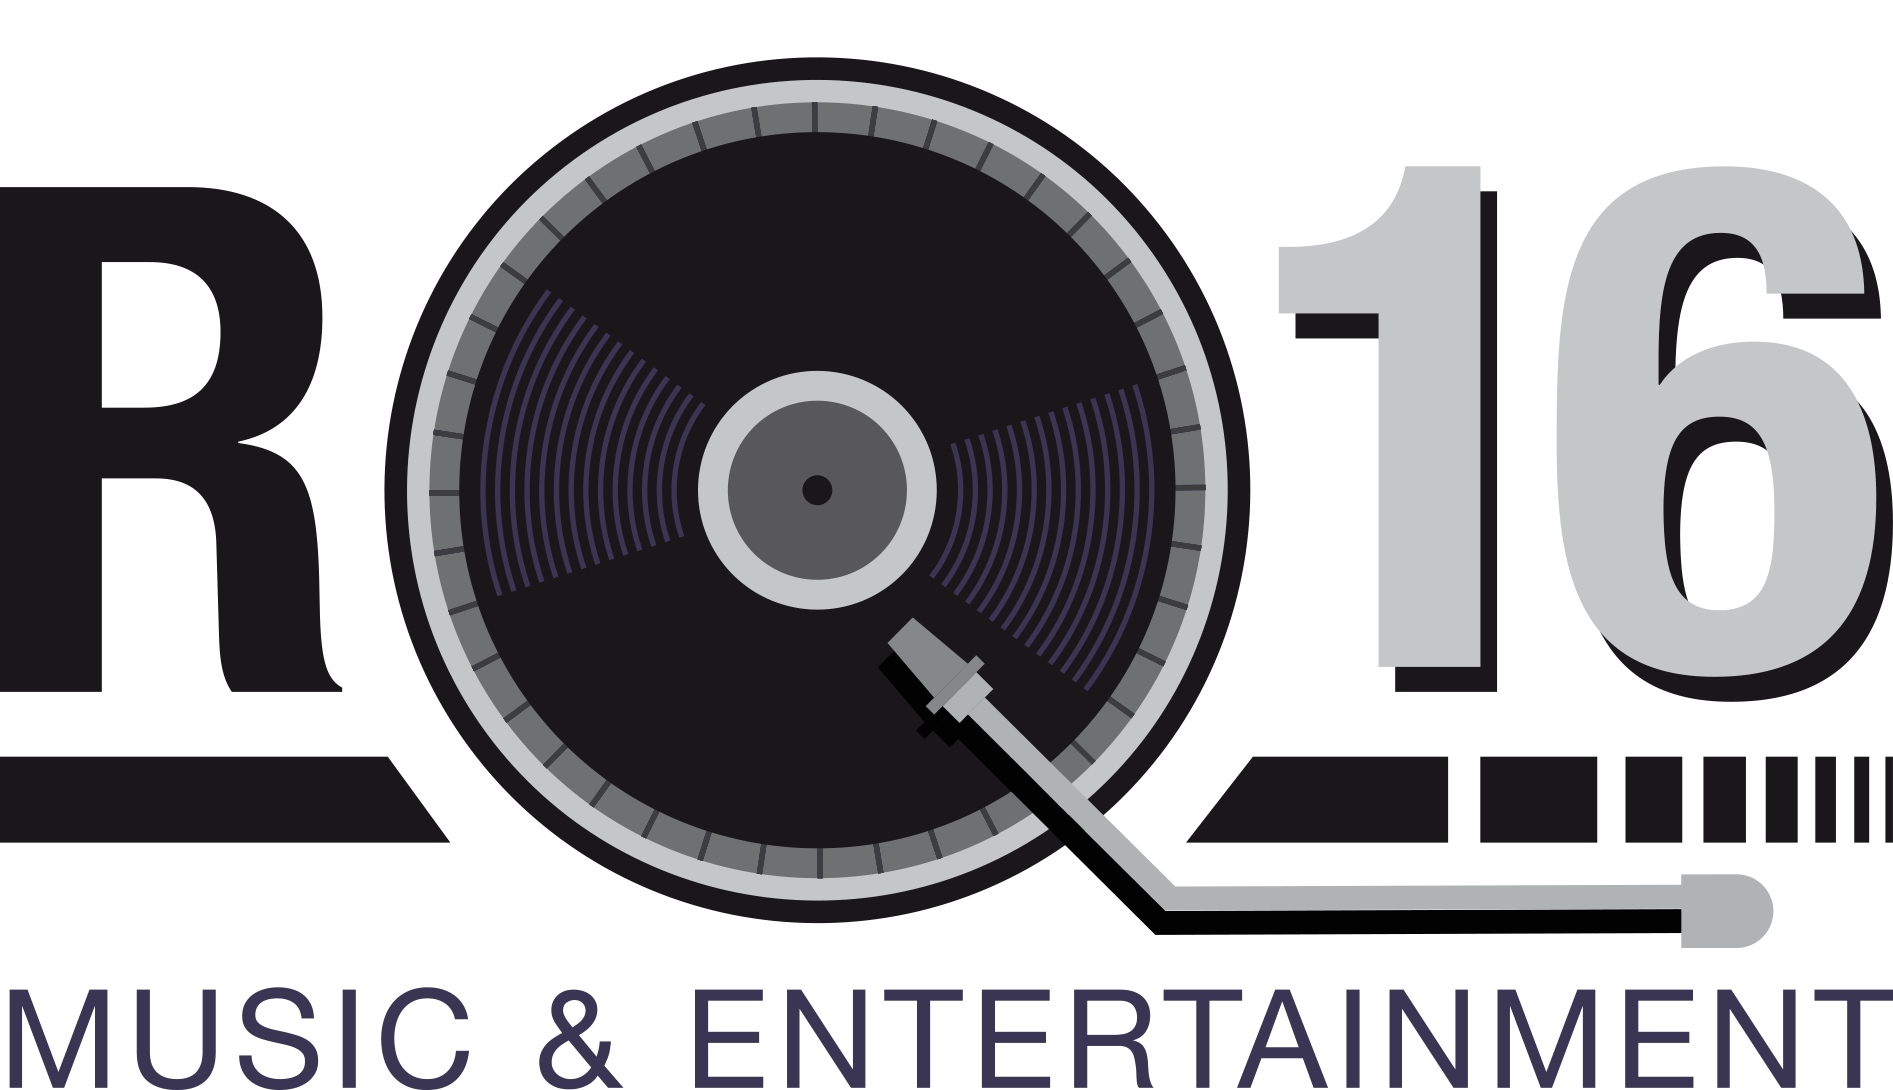 R16 - Music & Entertainment